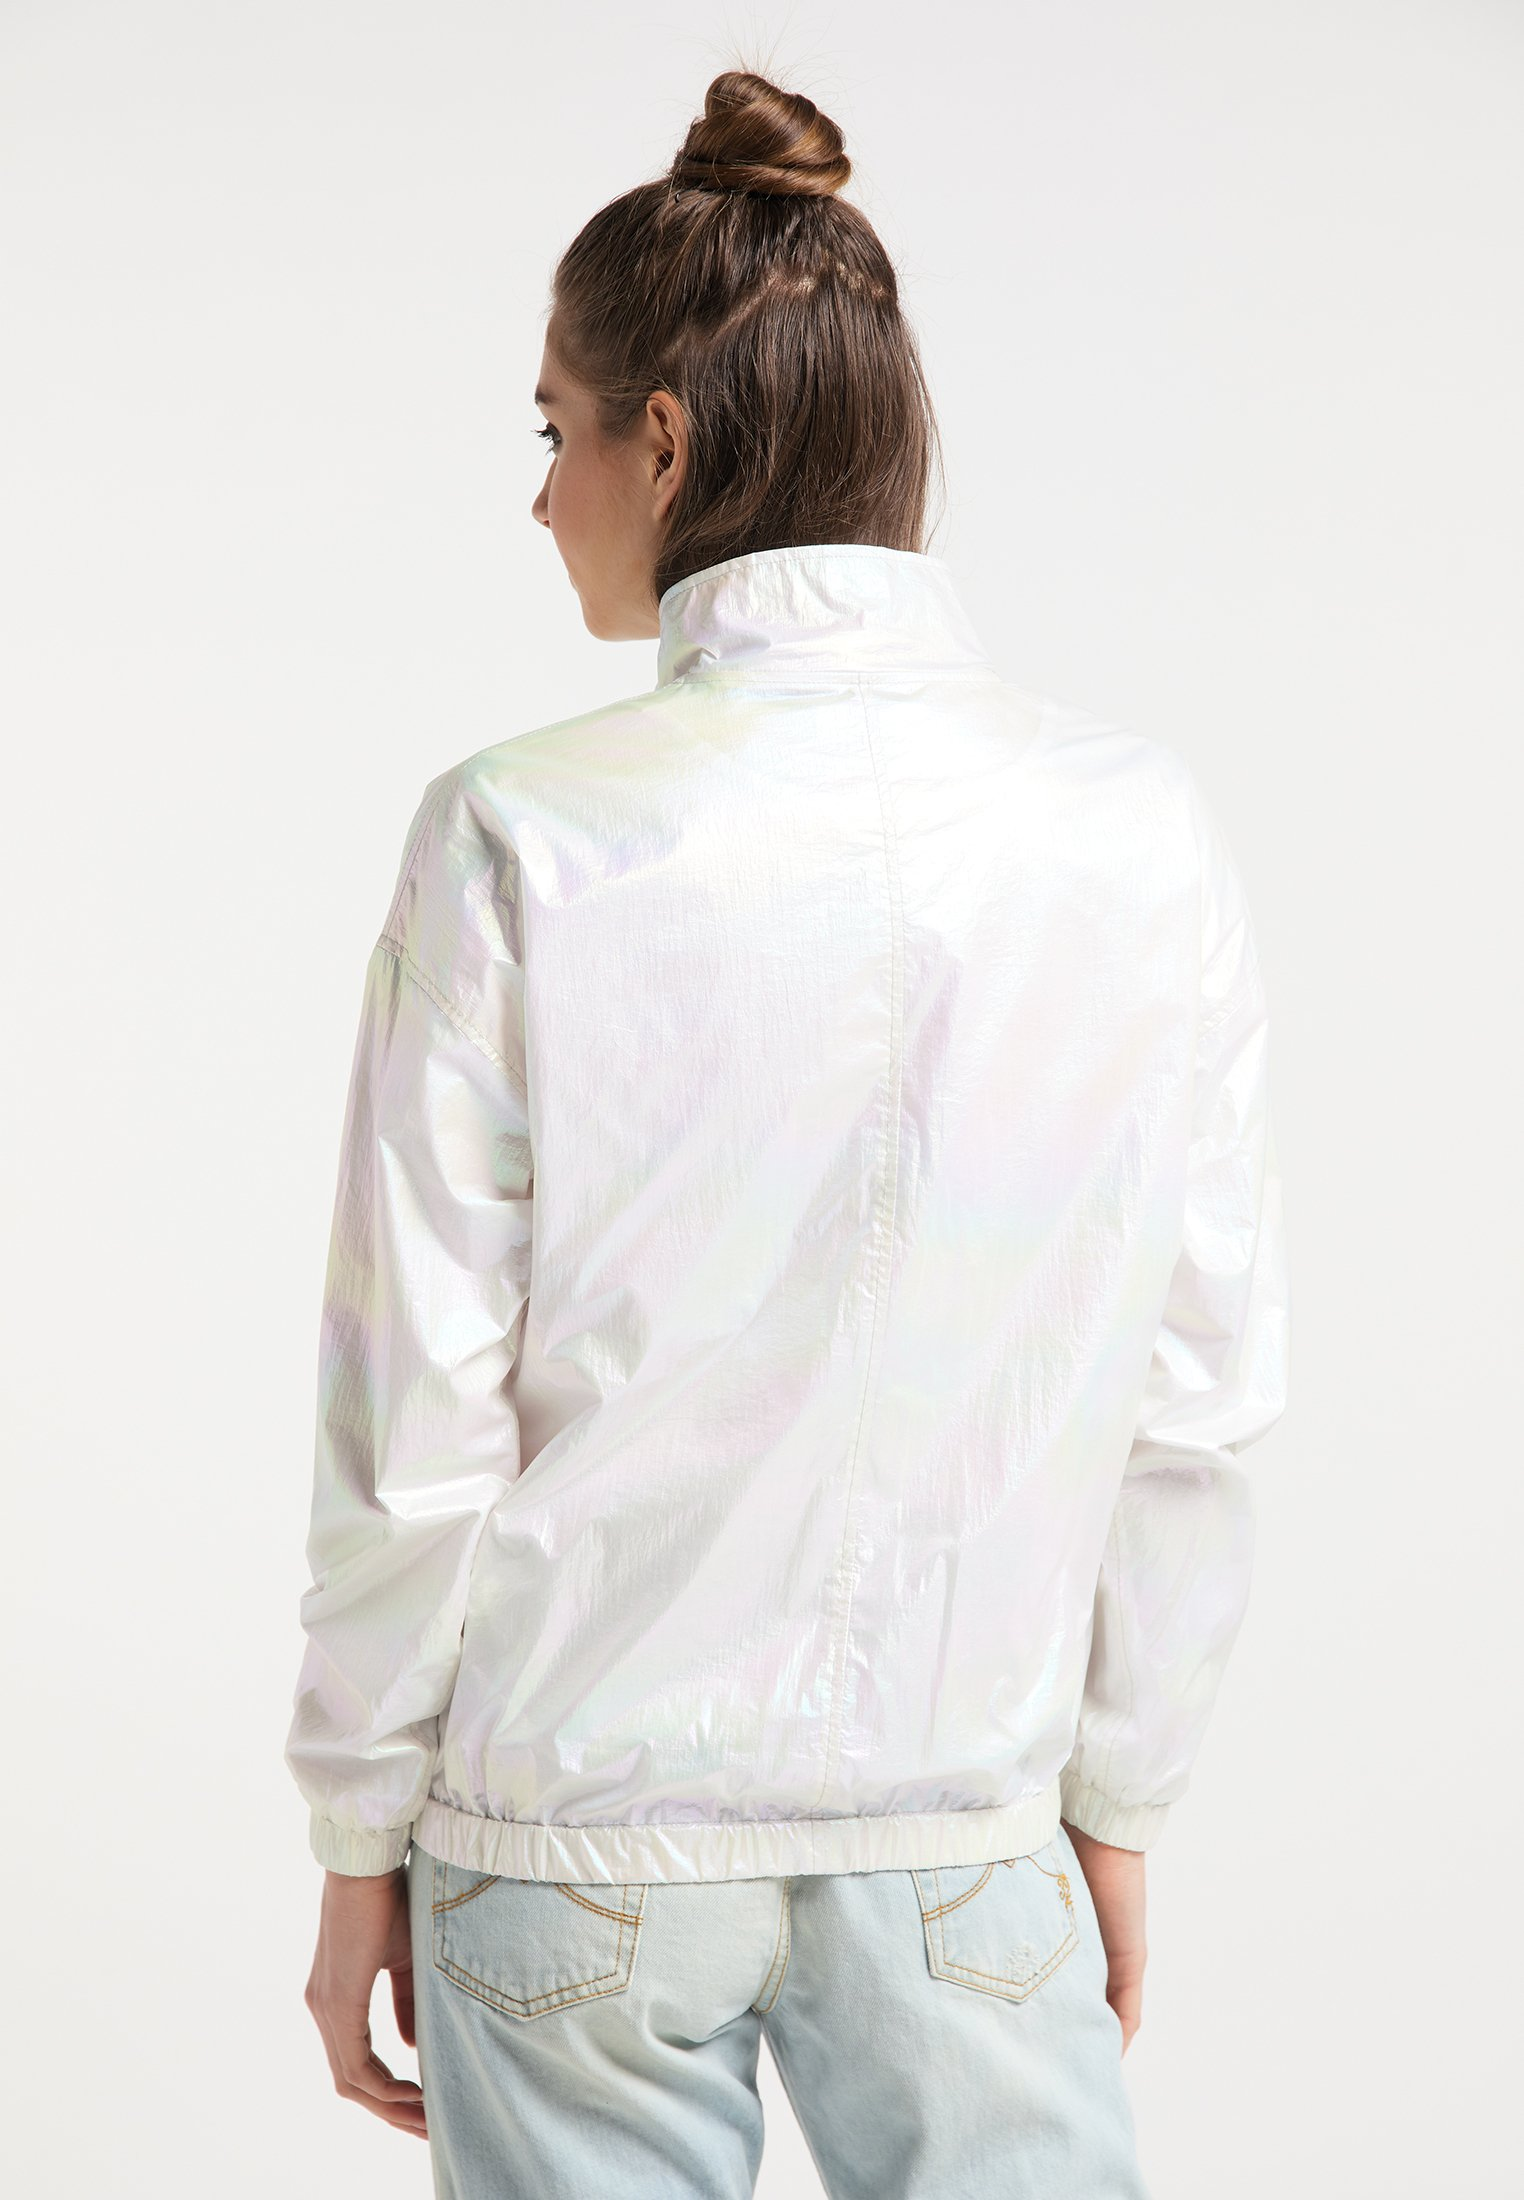 Limit Offer Cheap Women's Clothing myMo Waterproof jacket white holographic lQ7L3aVFp